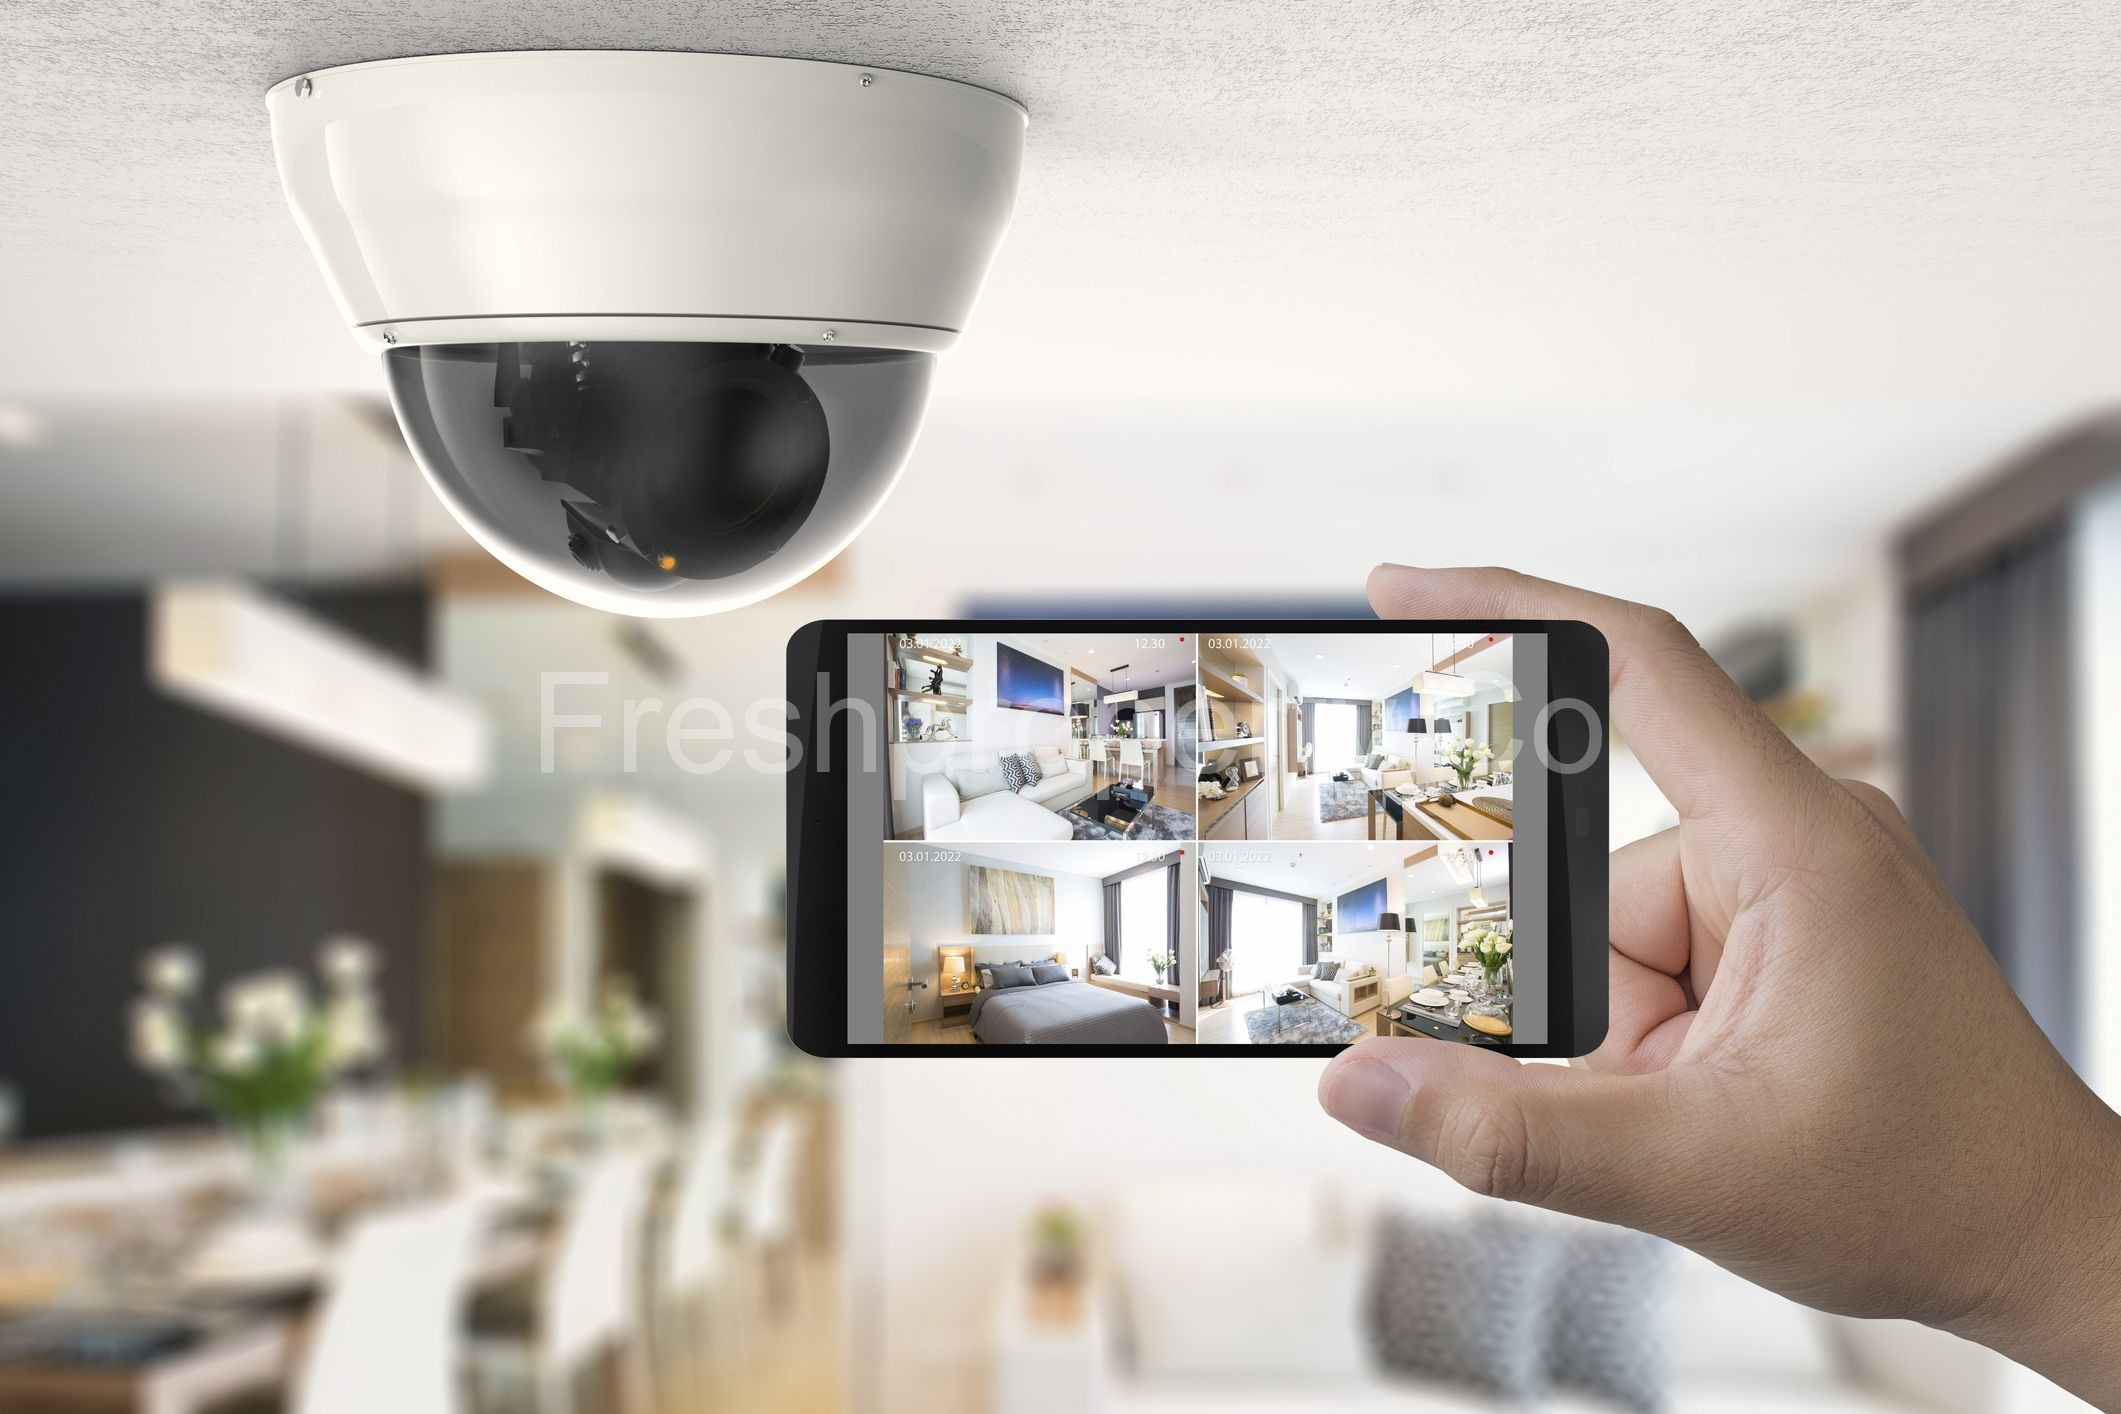 CCTV Cameras: The Issues of Privacy in Airbnb Homes